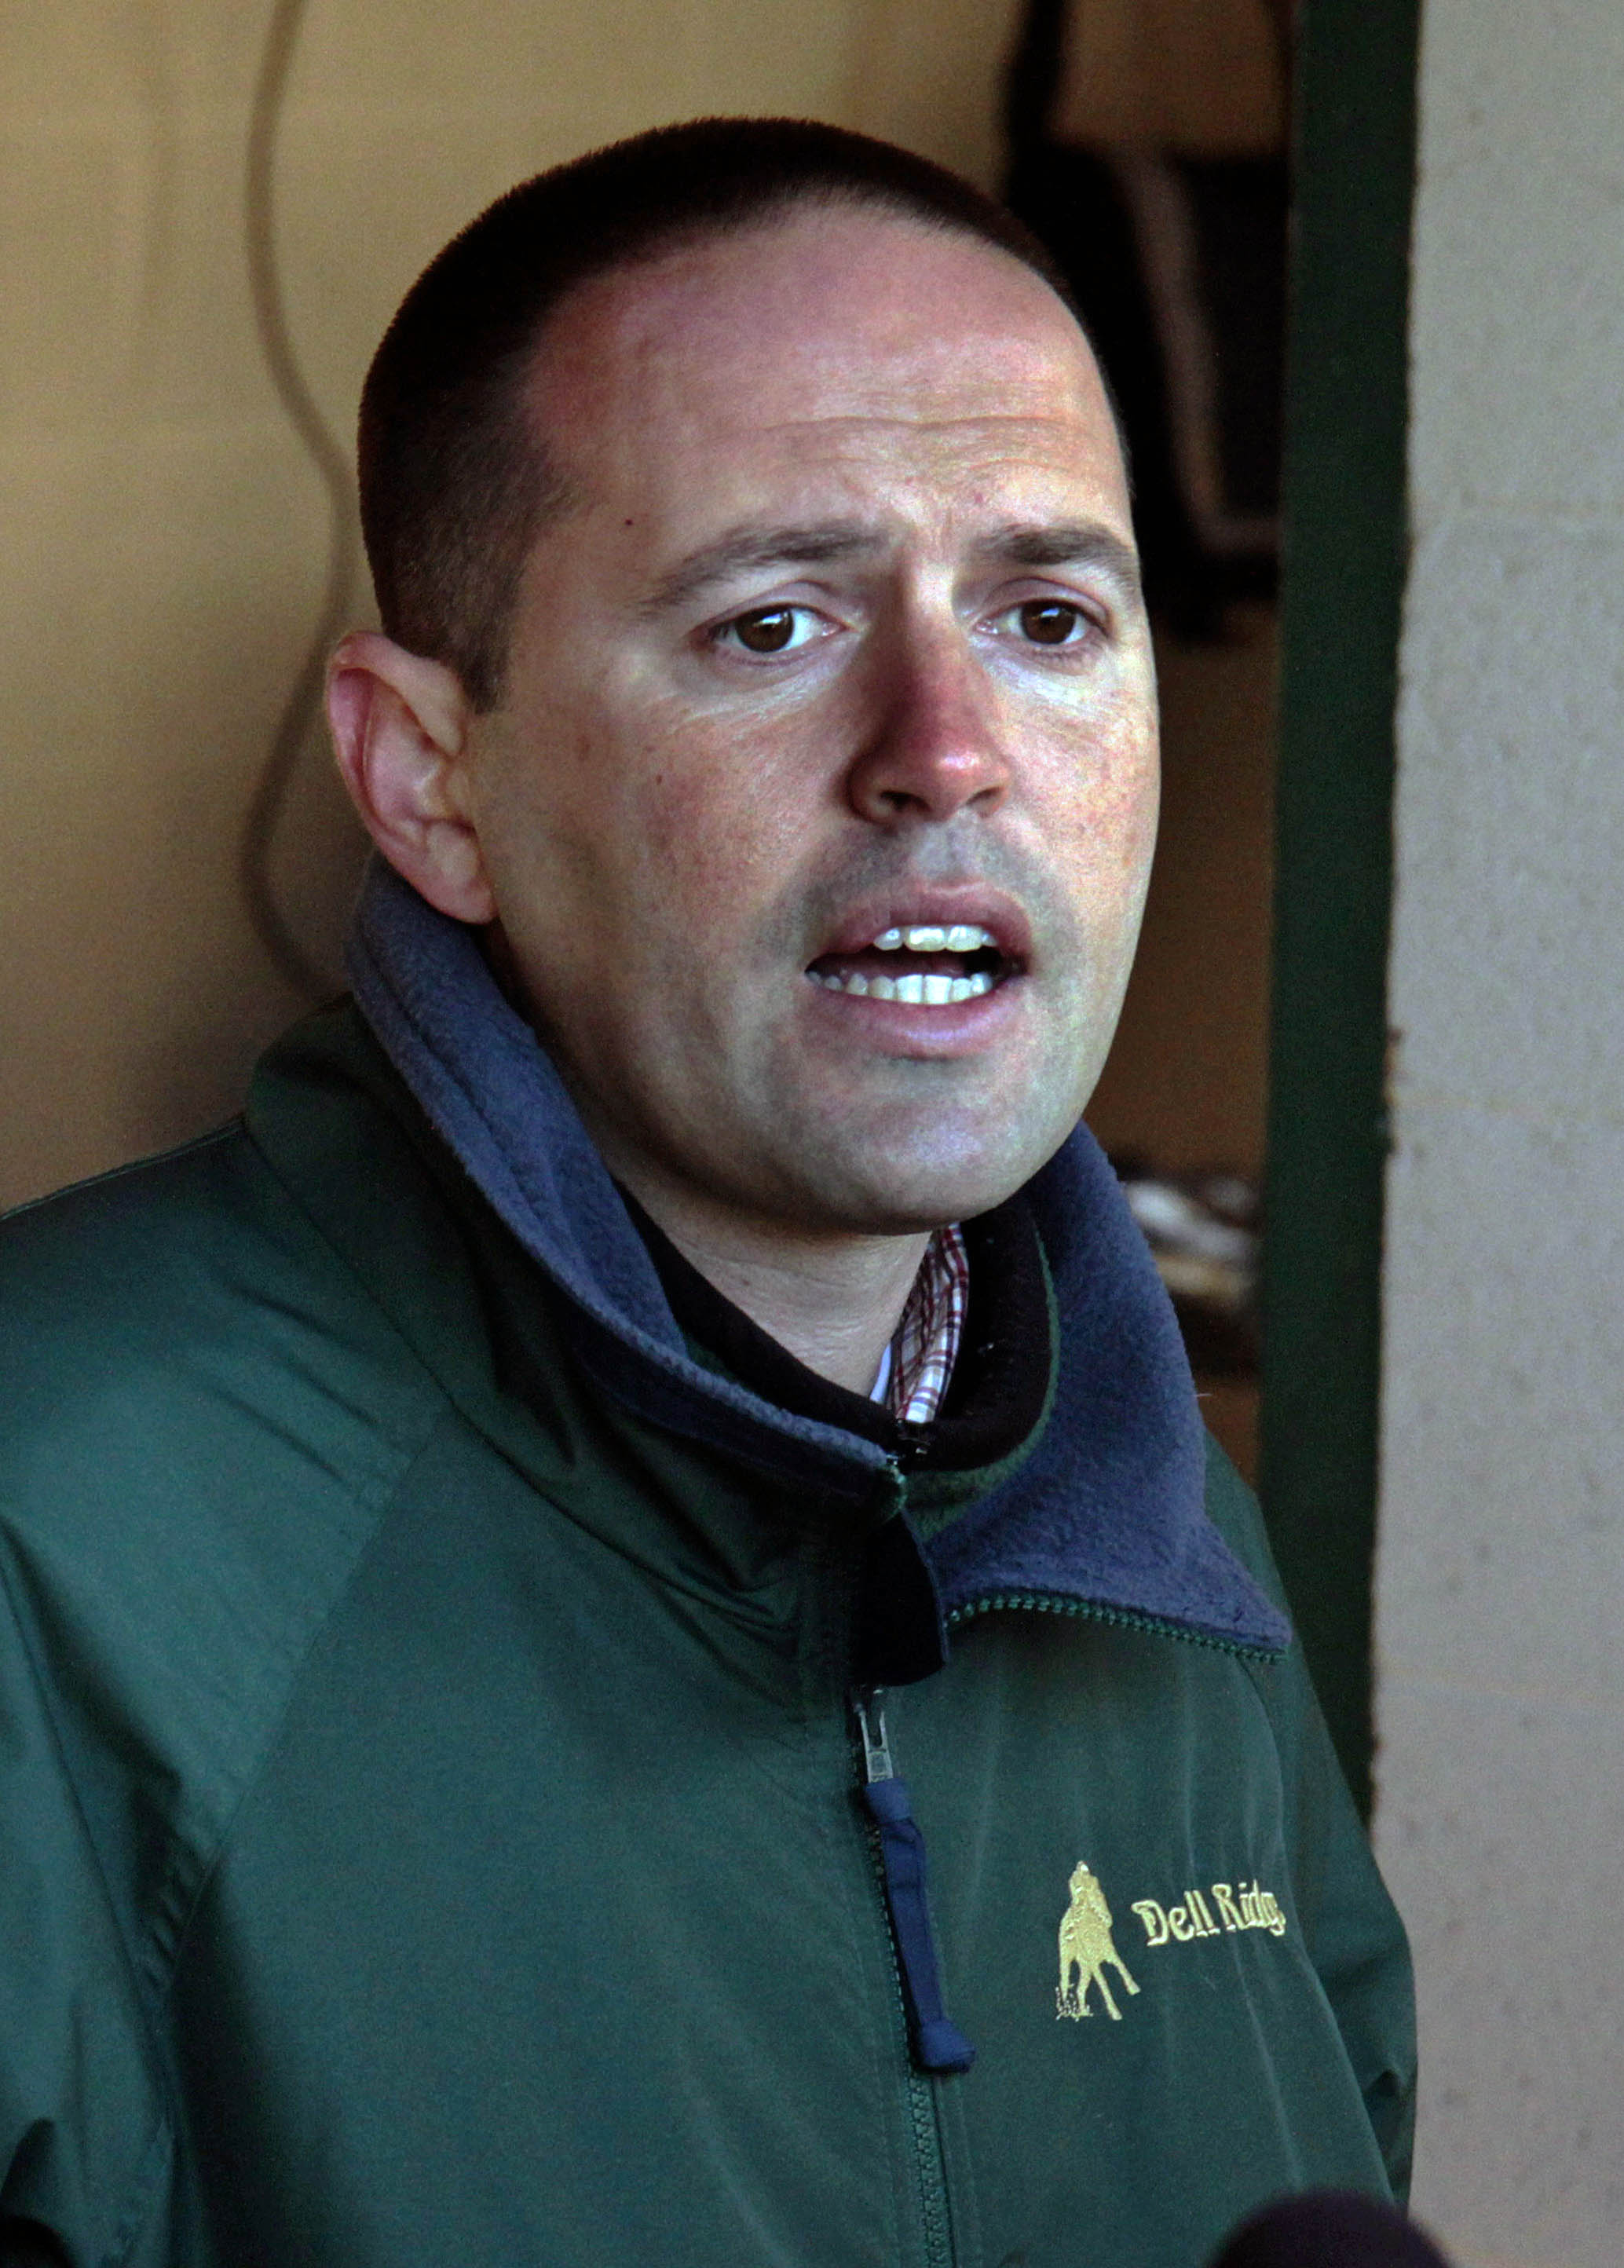 FILE - In this Sunday, April 21, 2013 file photo, Trainer Chad Brown talks about his Kentucky Derby hopeful Normandy Invasion outside Barn 42 at Churchill Downs in Louisville, Ky. Chad Brown had a pretty good run the first time he took a horse to the Kent